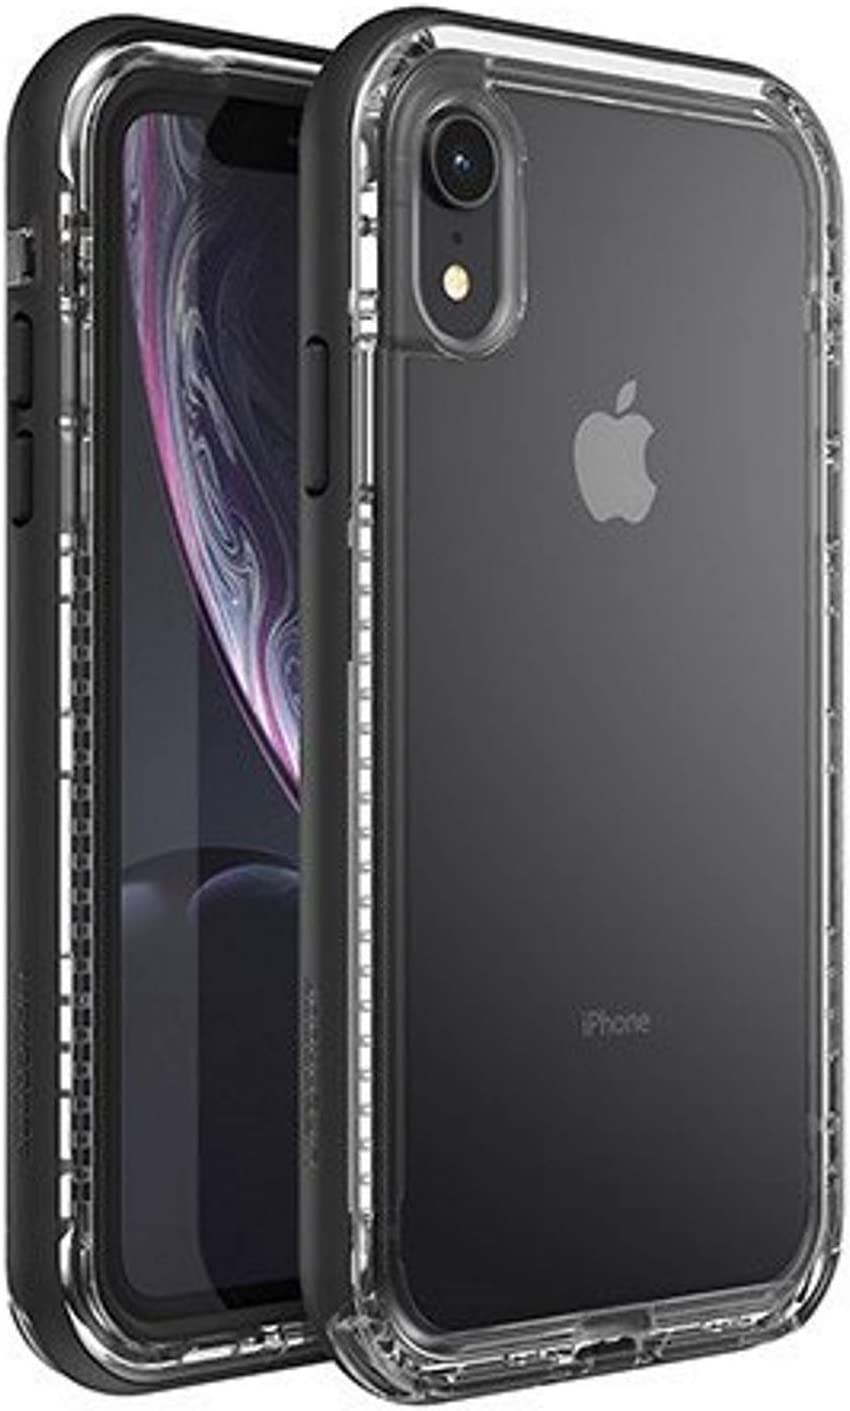 Lifeproof Next Series Case for iPhone XR - Retail Packaging - (Black Crystal)